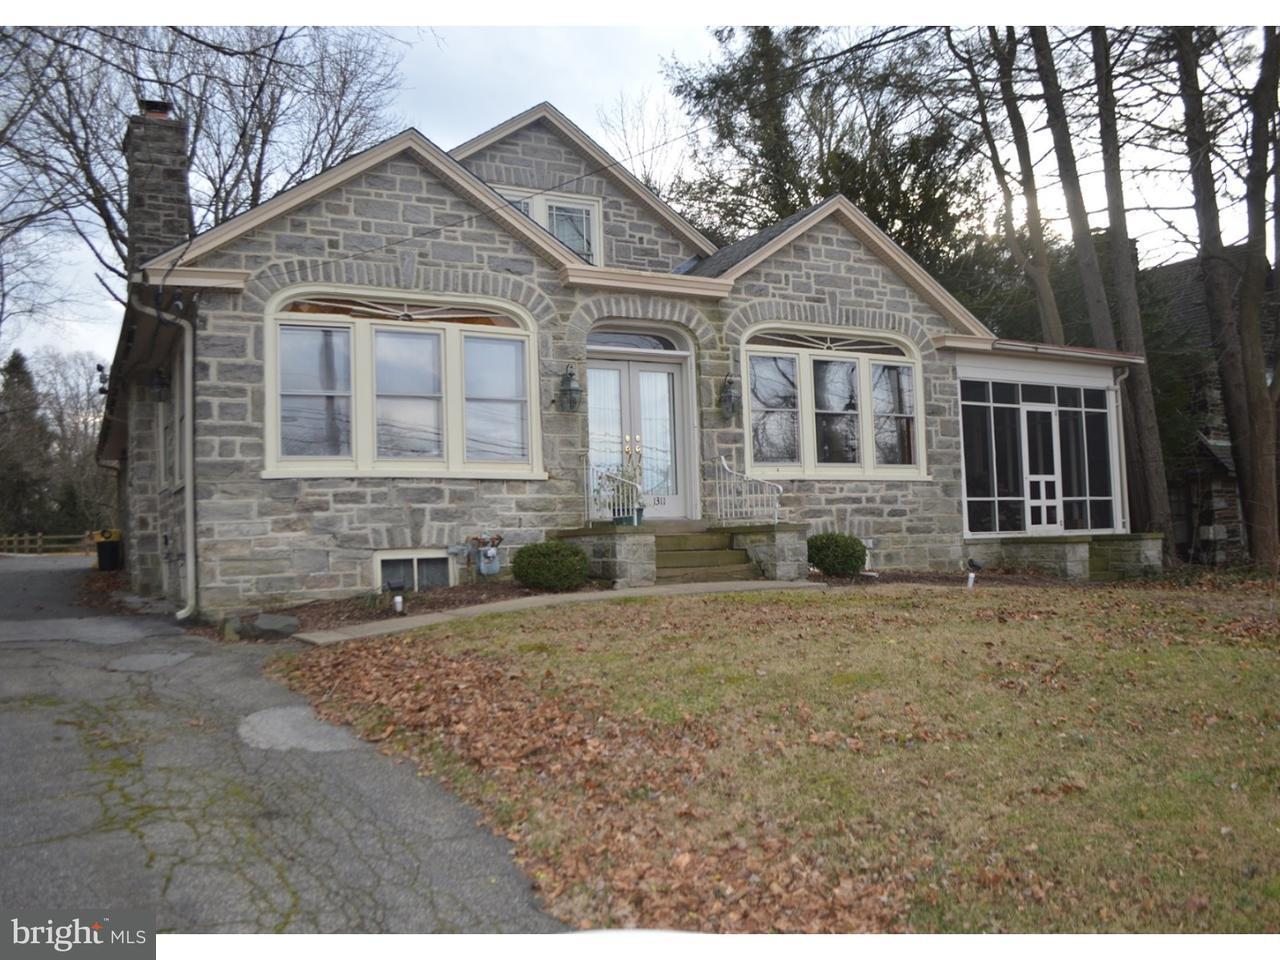 Single Family Home for Rent at 1311 BALTIMORE PIKE Springfield, Pennsylvania 19064 United States